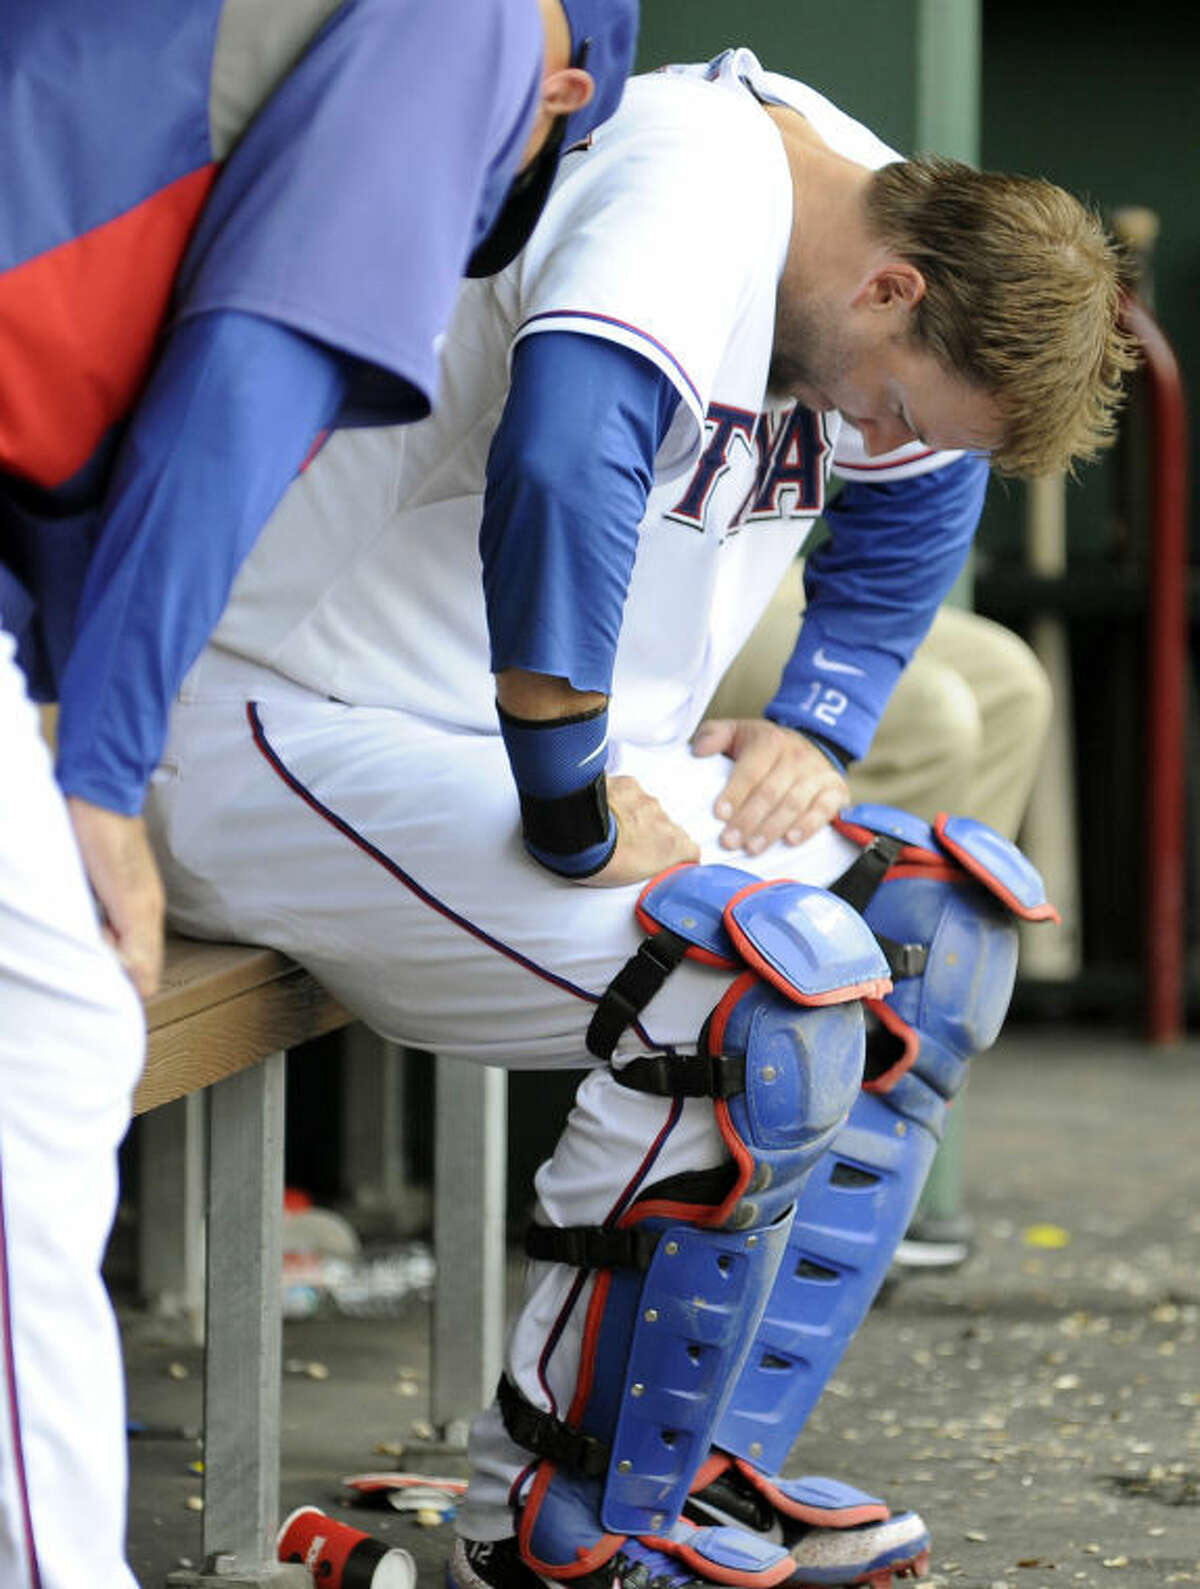 Texas Rangers catcher A.J. Pierzynski reacts in the dugout during the ninth inning against the Oakland Athletics on Sunday in Arlington. The Athletics won 5-1, completing a three-game sweep of the series. (AP Photo/Matt Strasen)